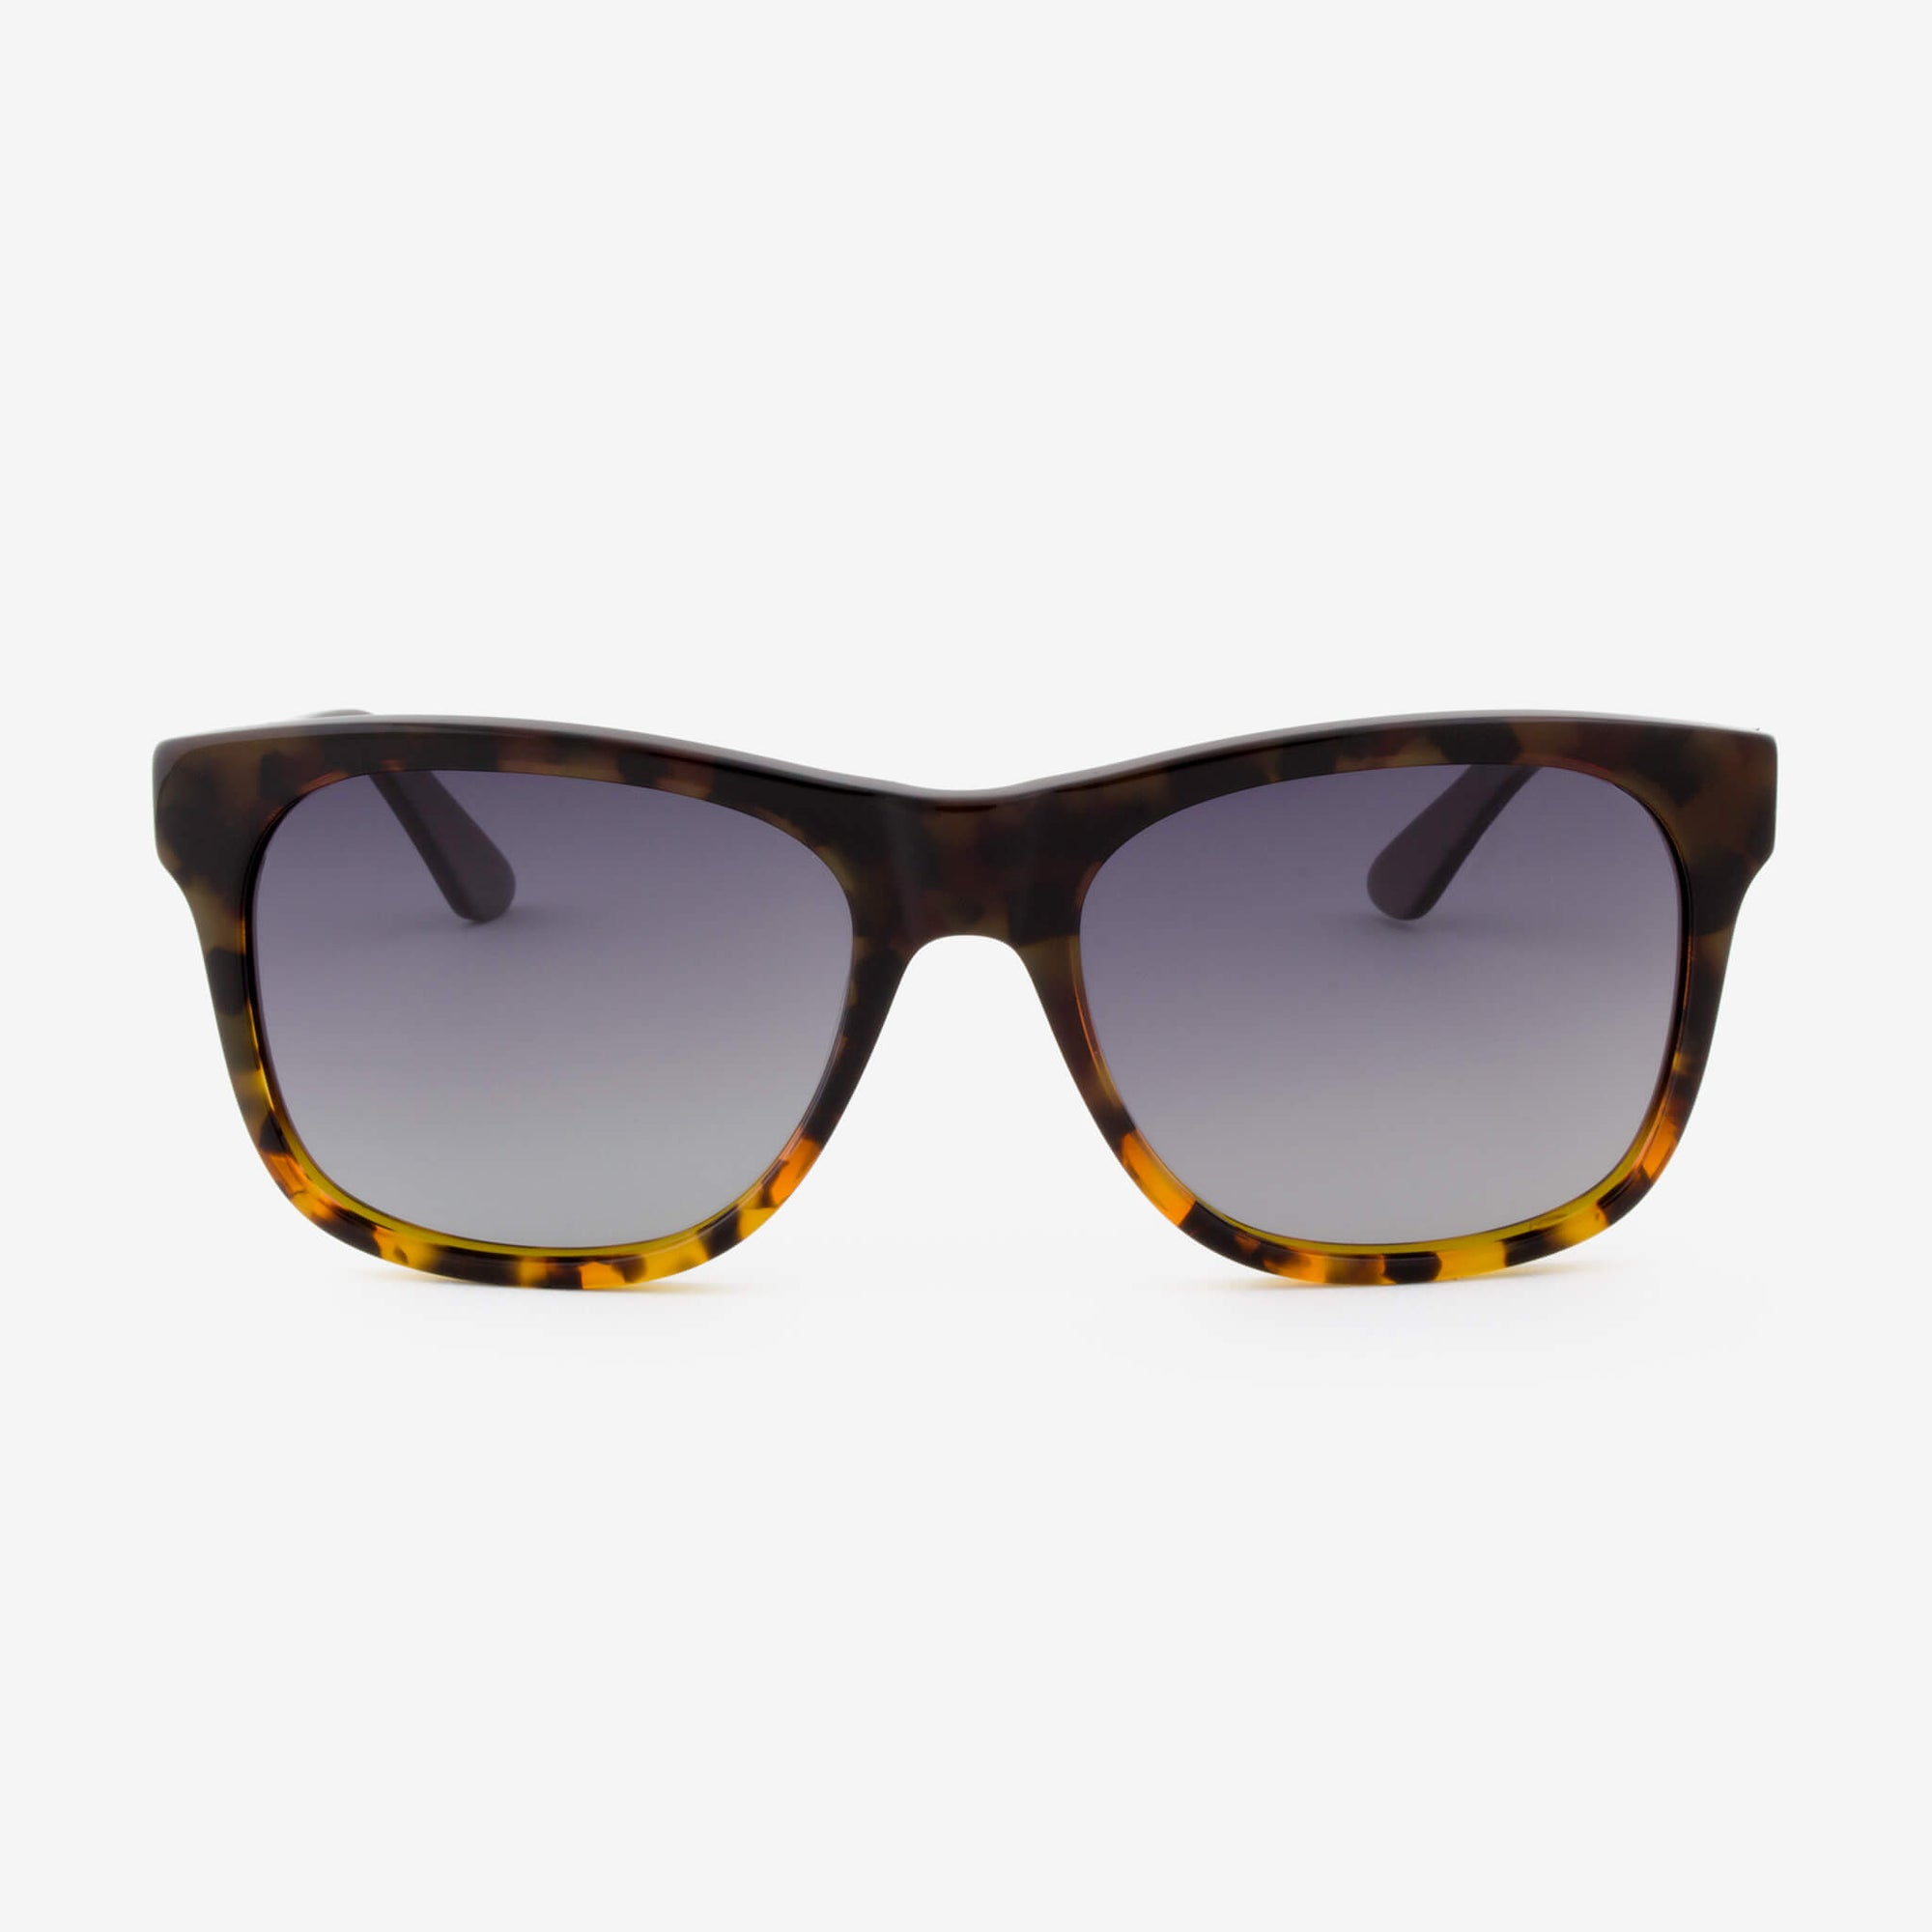 Juno smoke fade tortoise shell acetate and wood sunglasses